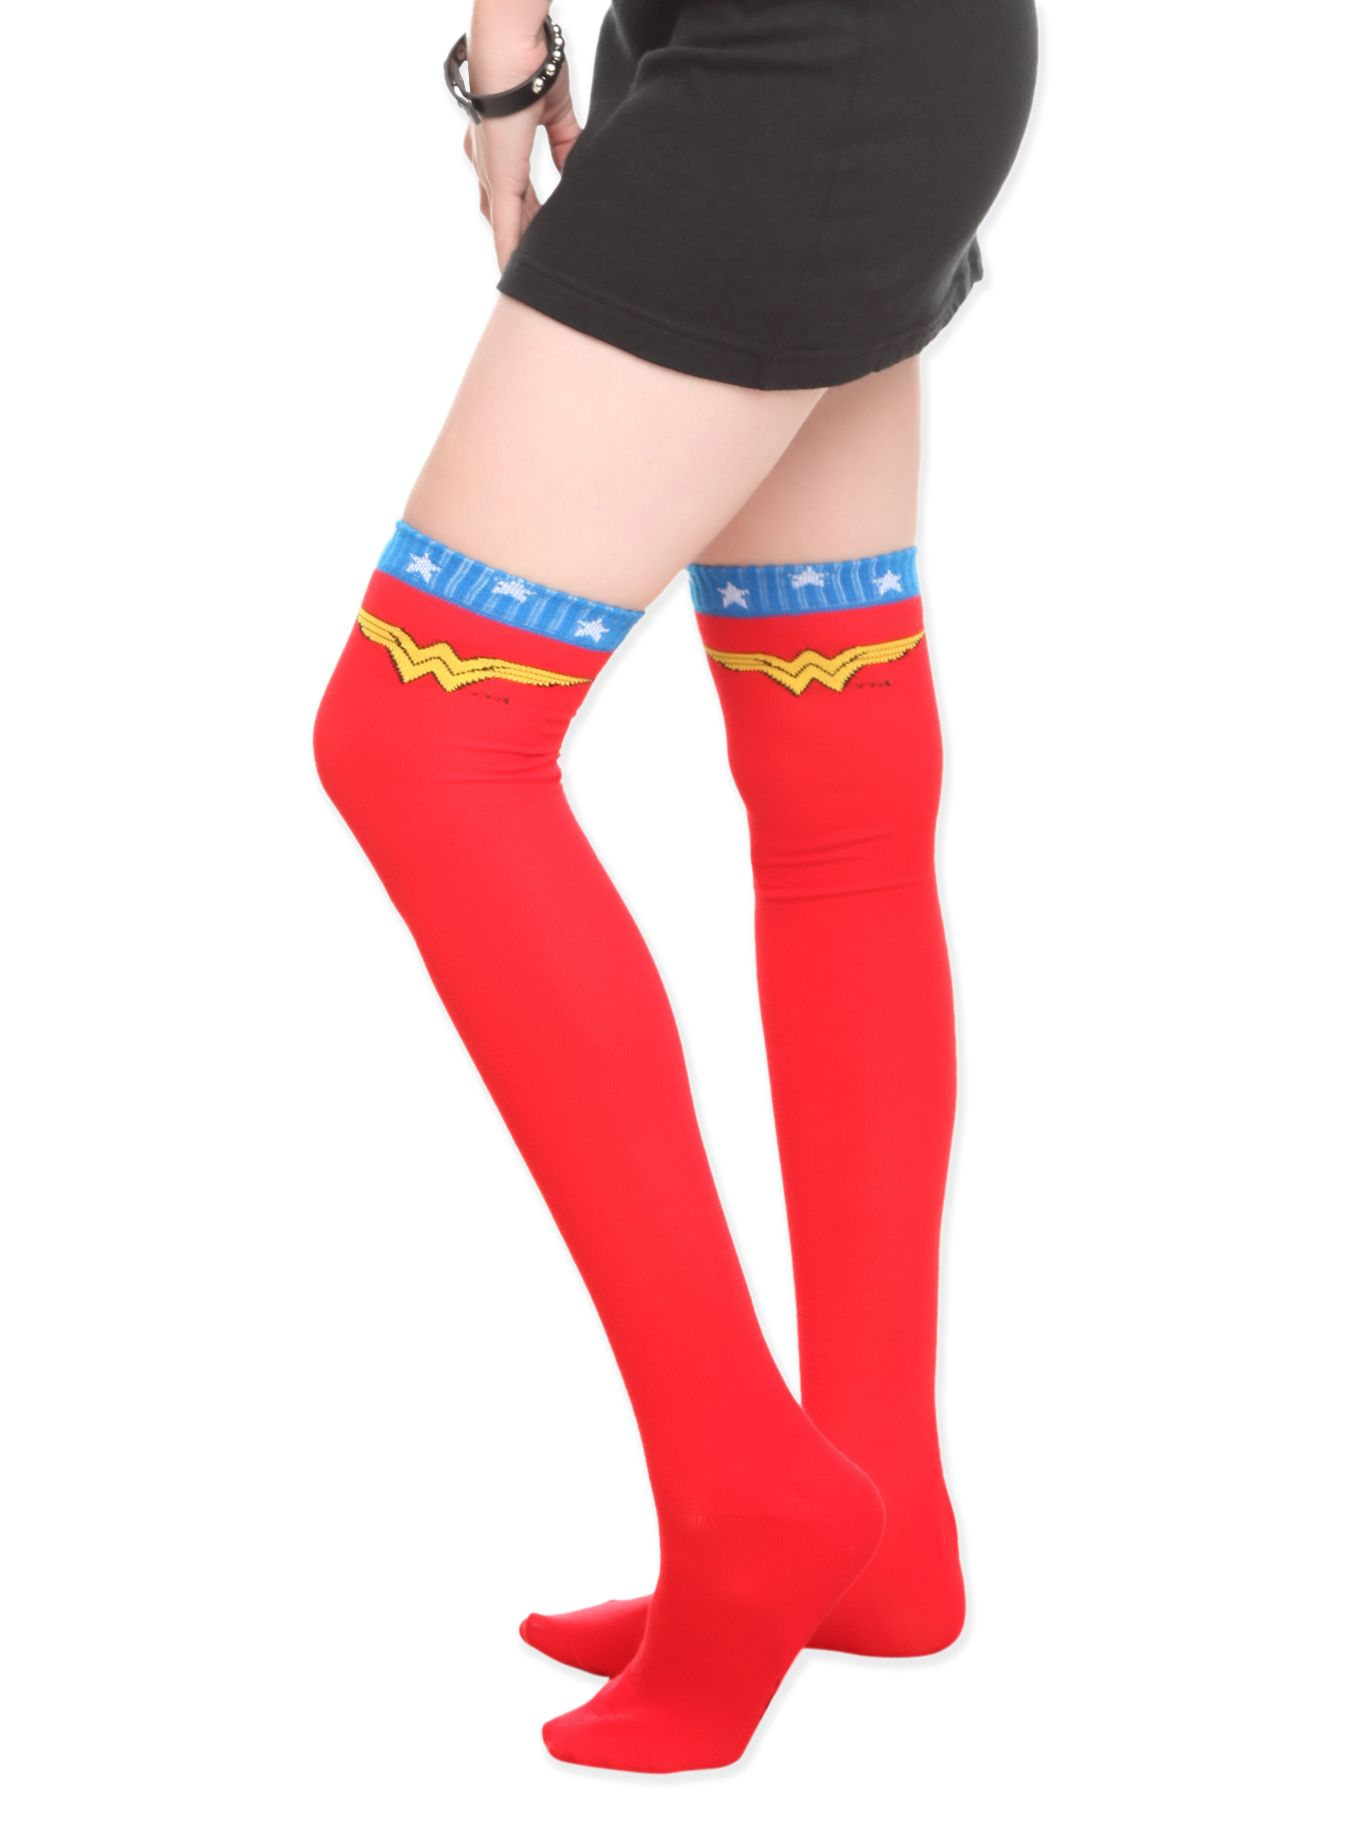 7f76c3d7309 Red over-the-knee socks with blue   white star stripe and Wonder Woman logo  at the top.